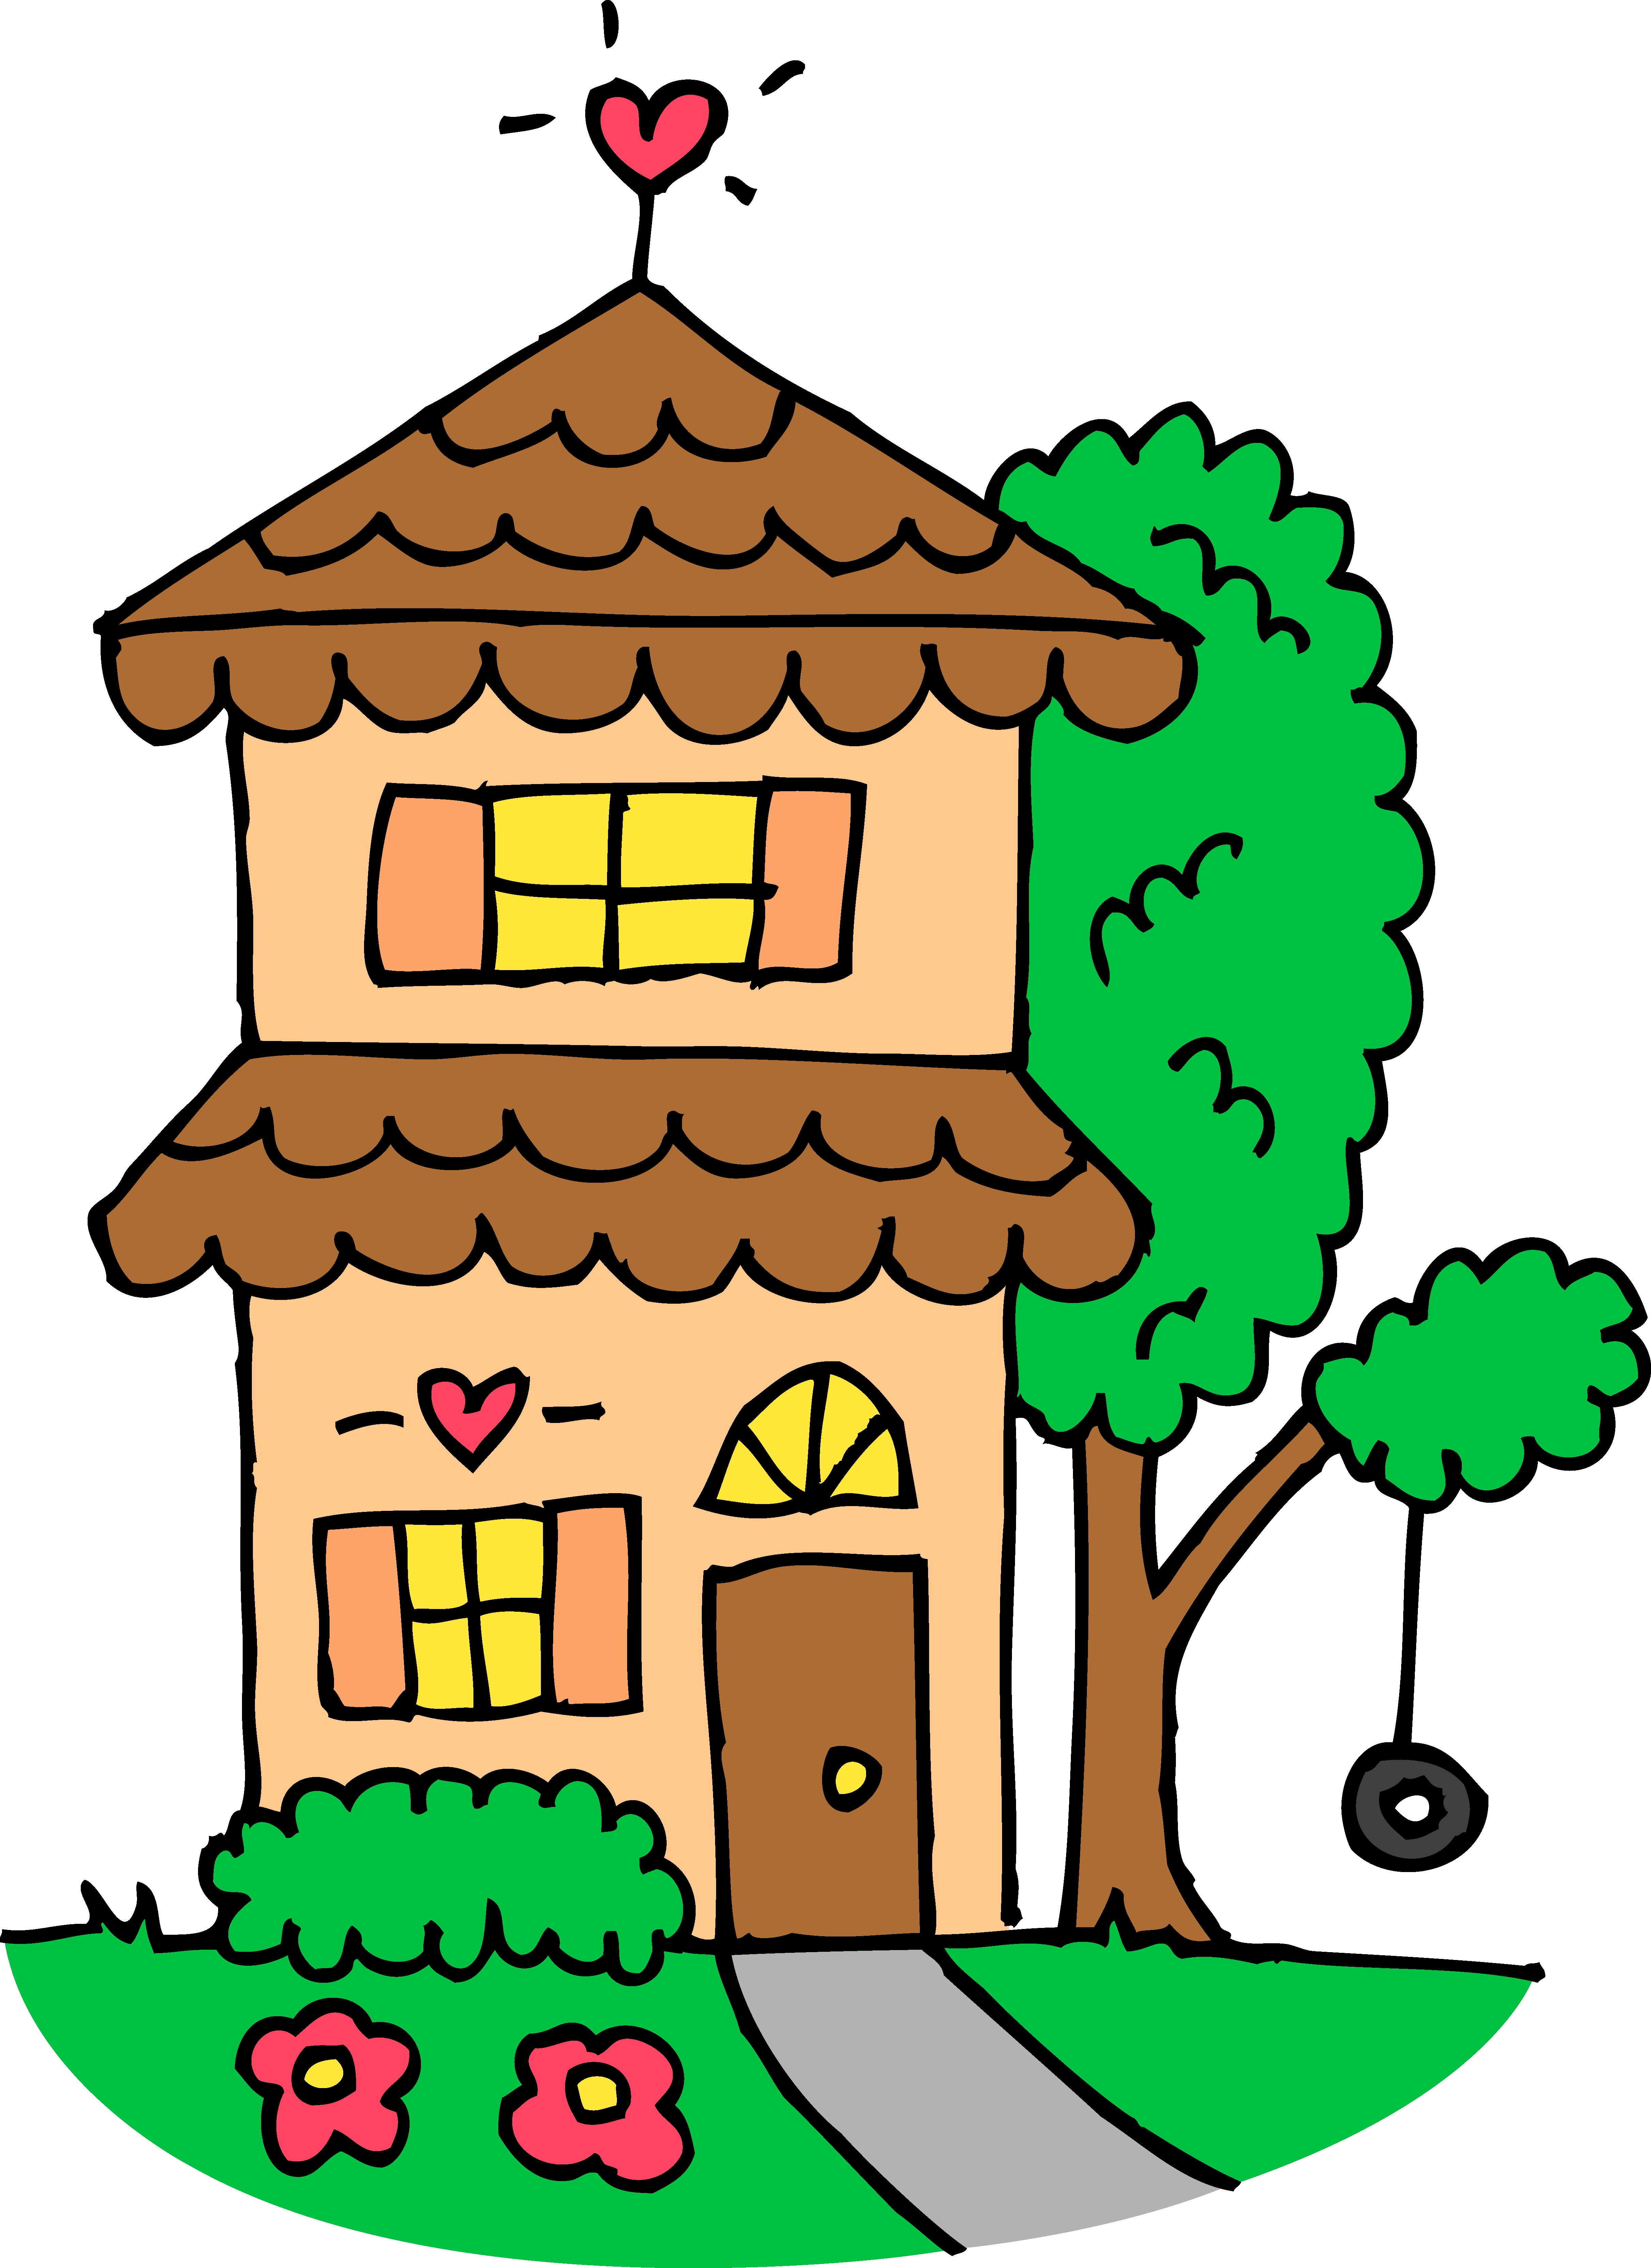 With clipart house. Clip art images of